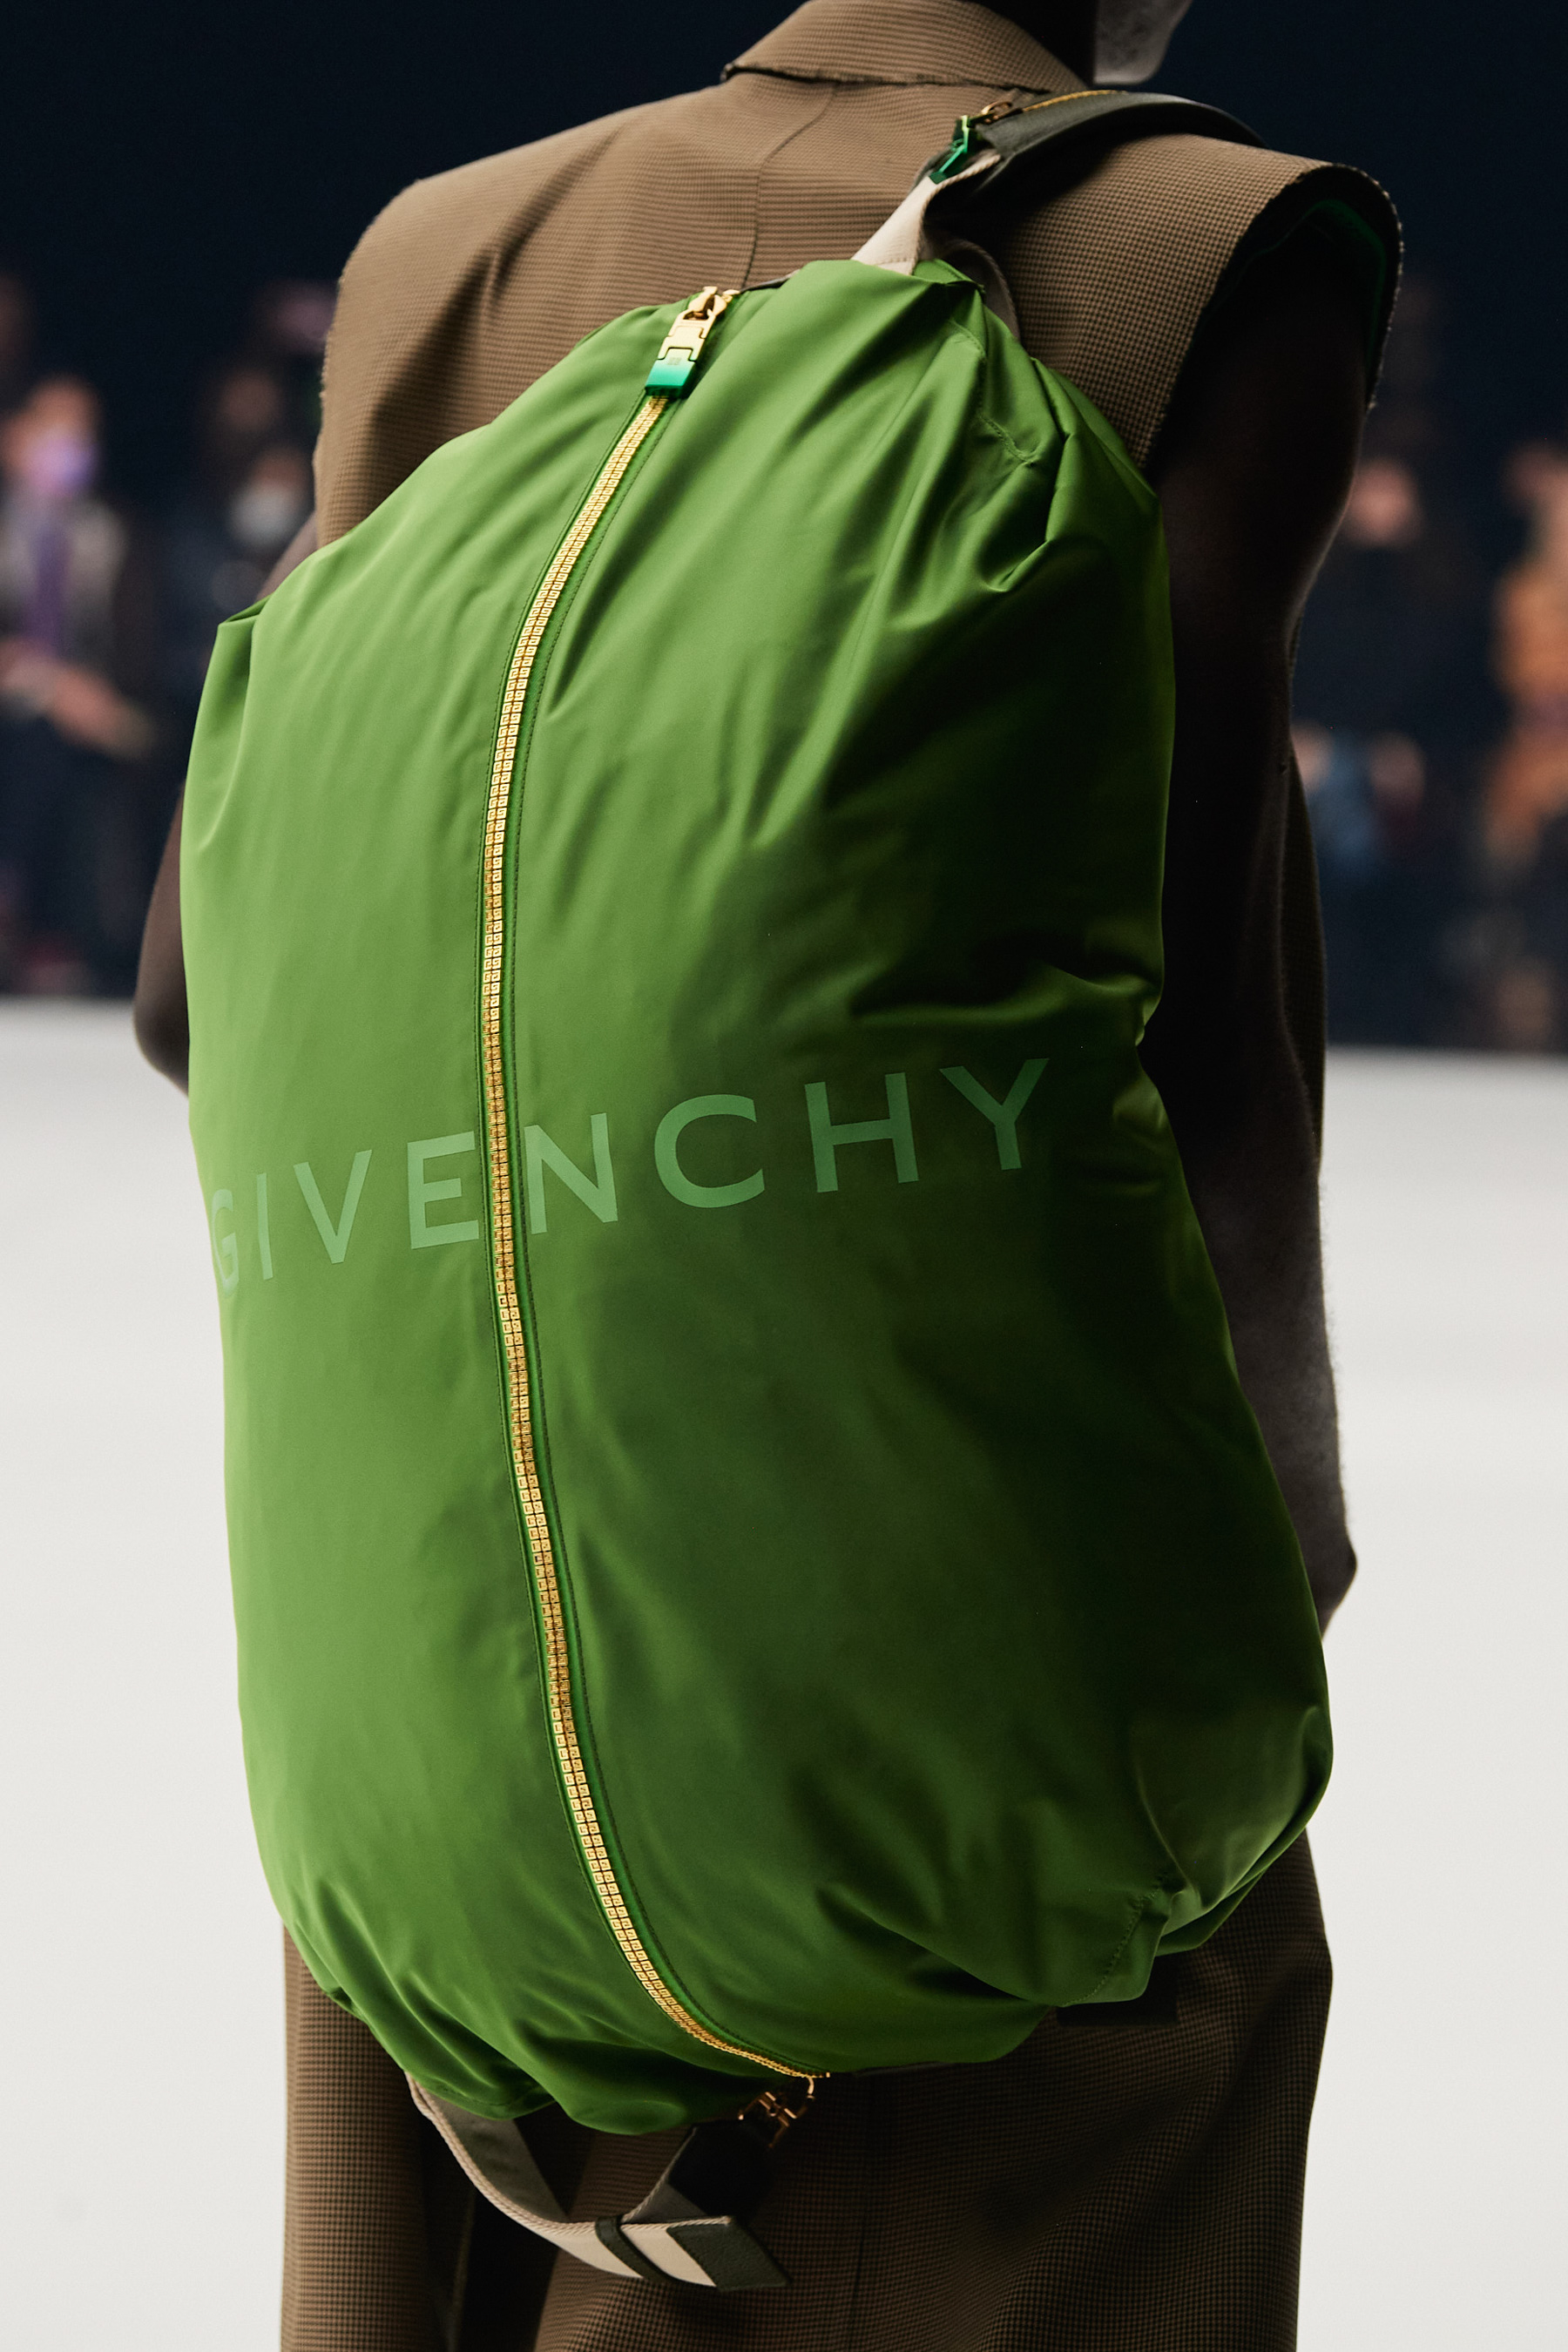 Givenchy Spring 2022 Details Fashion Show